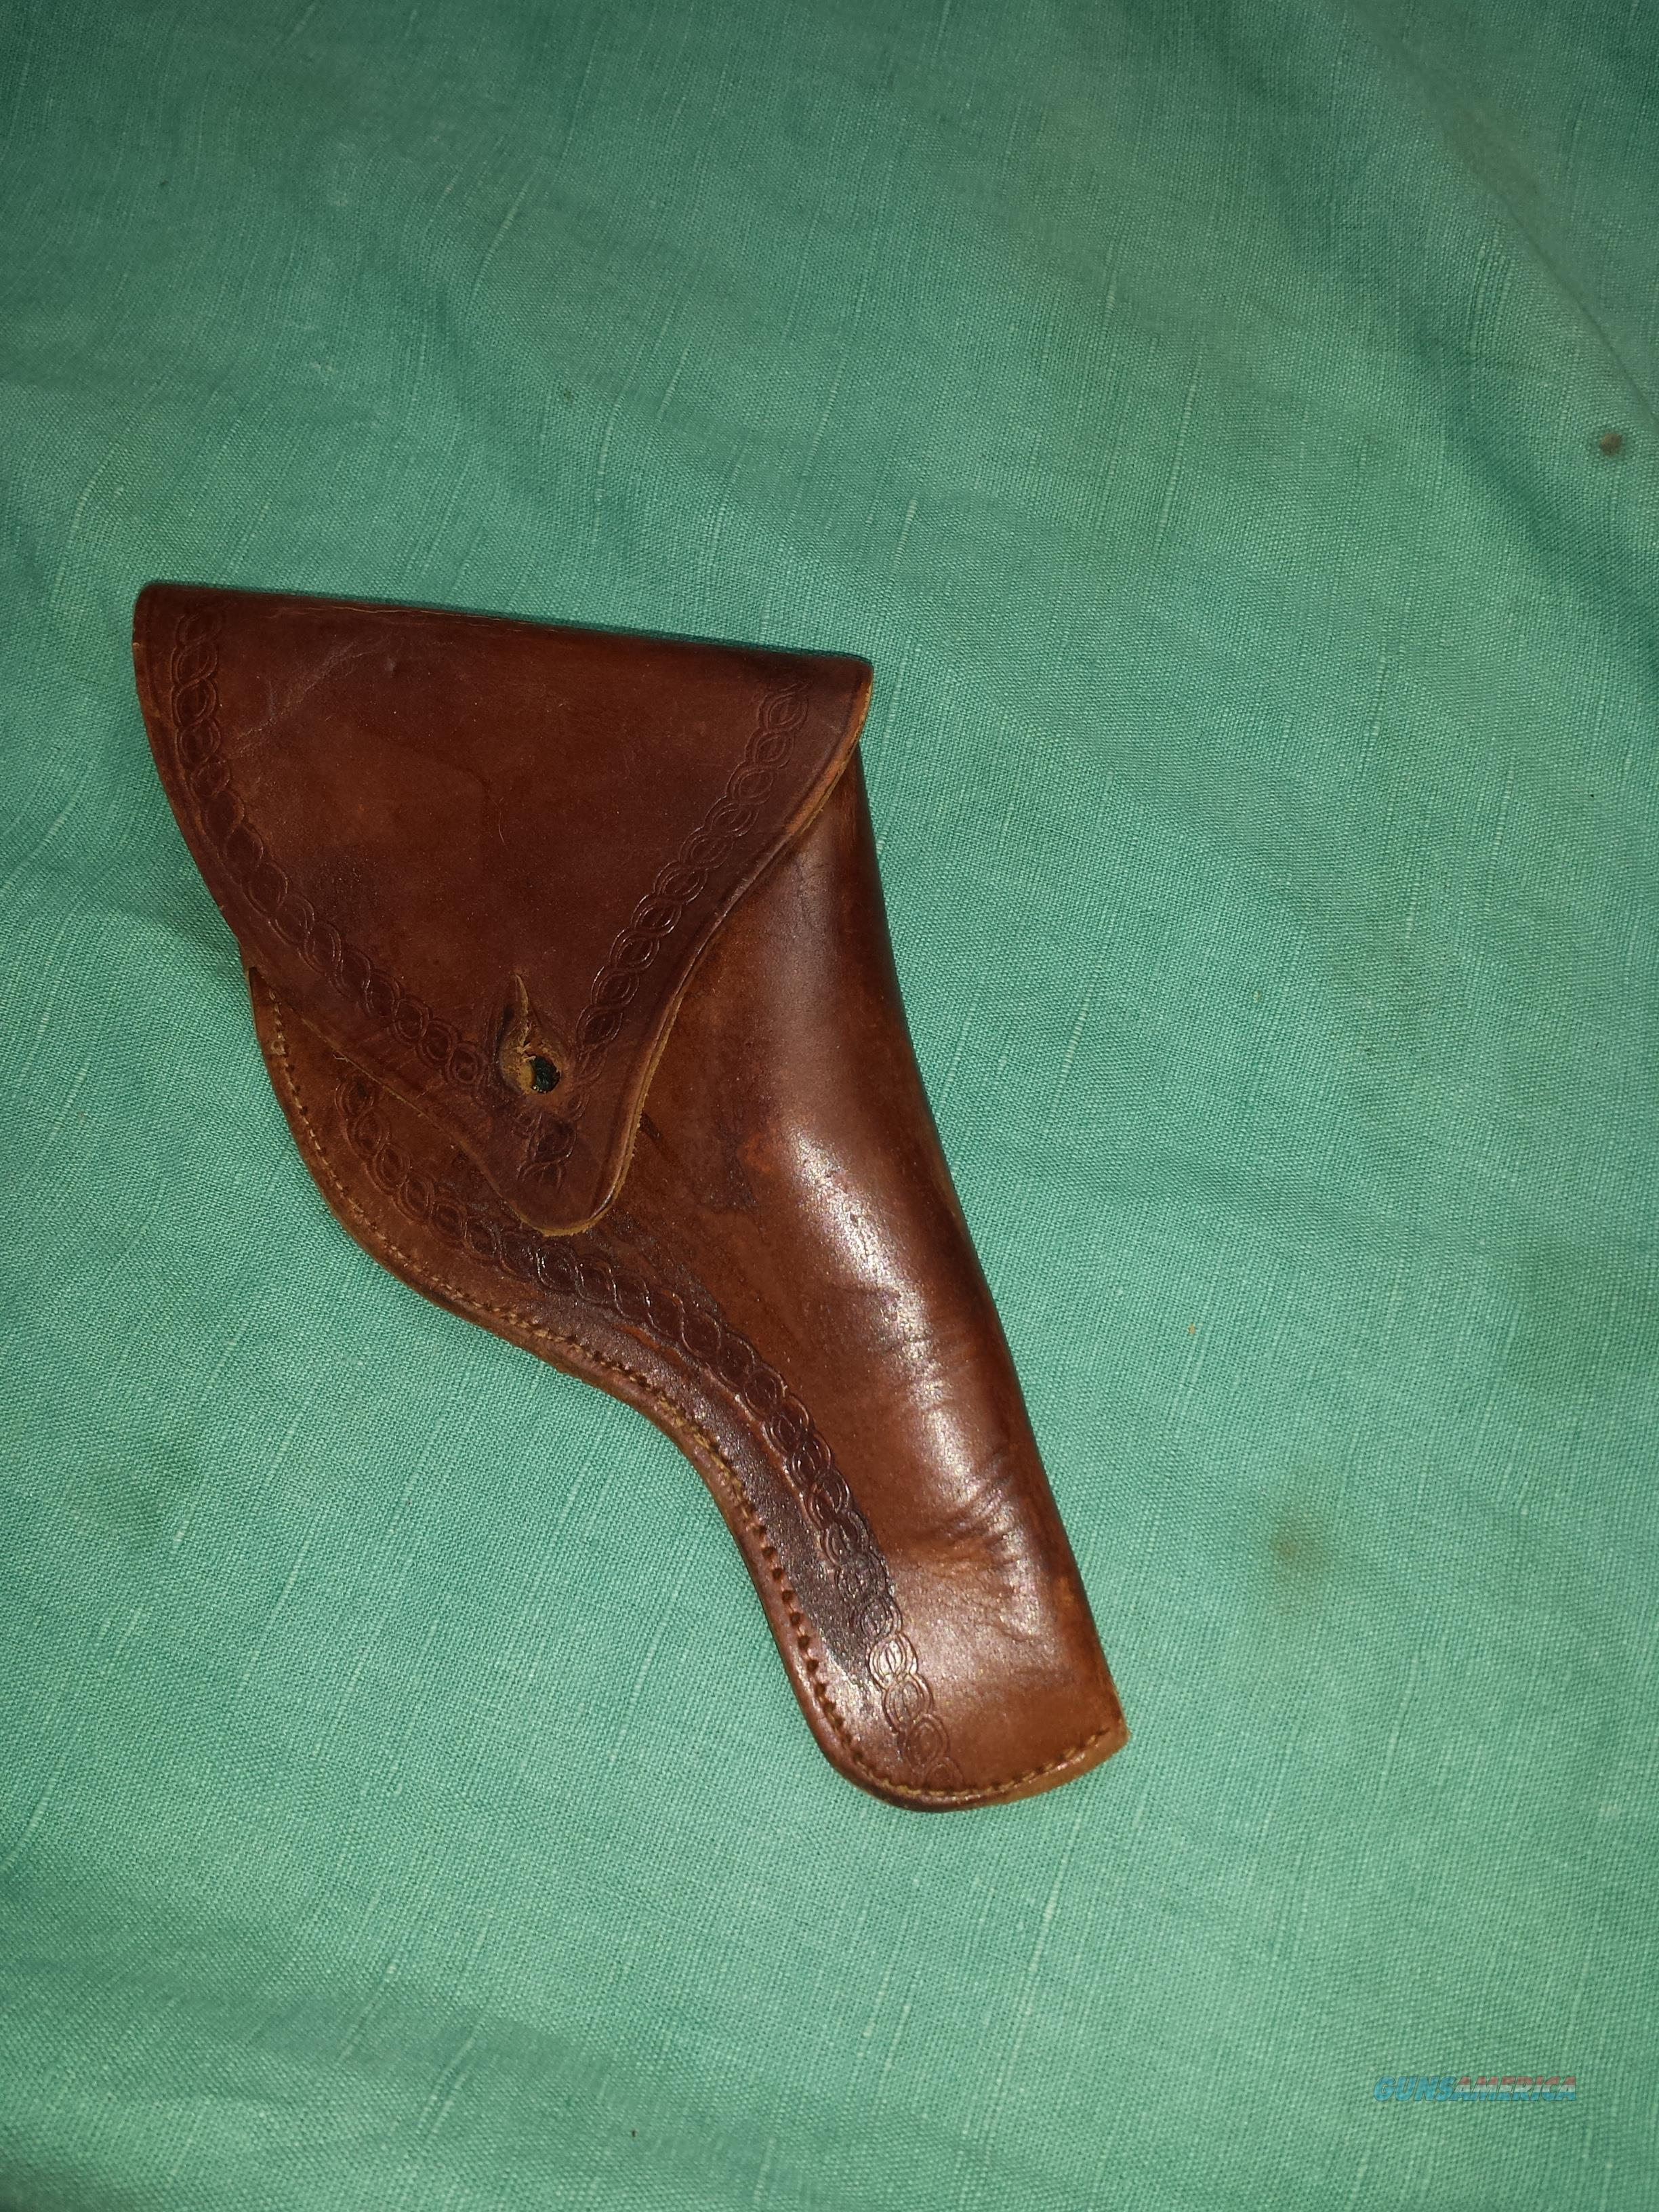 VINTAGE SMALL FRAME REVOLVER  HOLSTER  Non-Guns > Holsters and Gunleather > Revolver